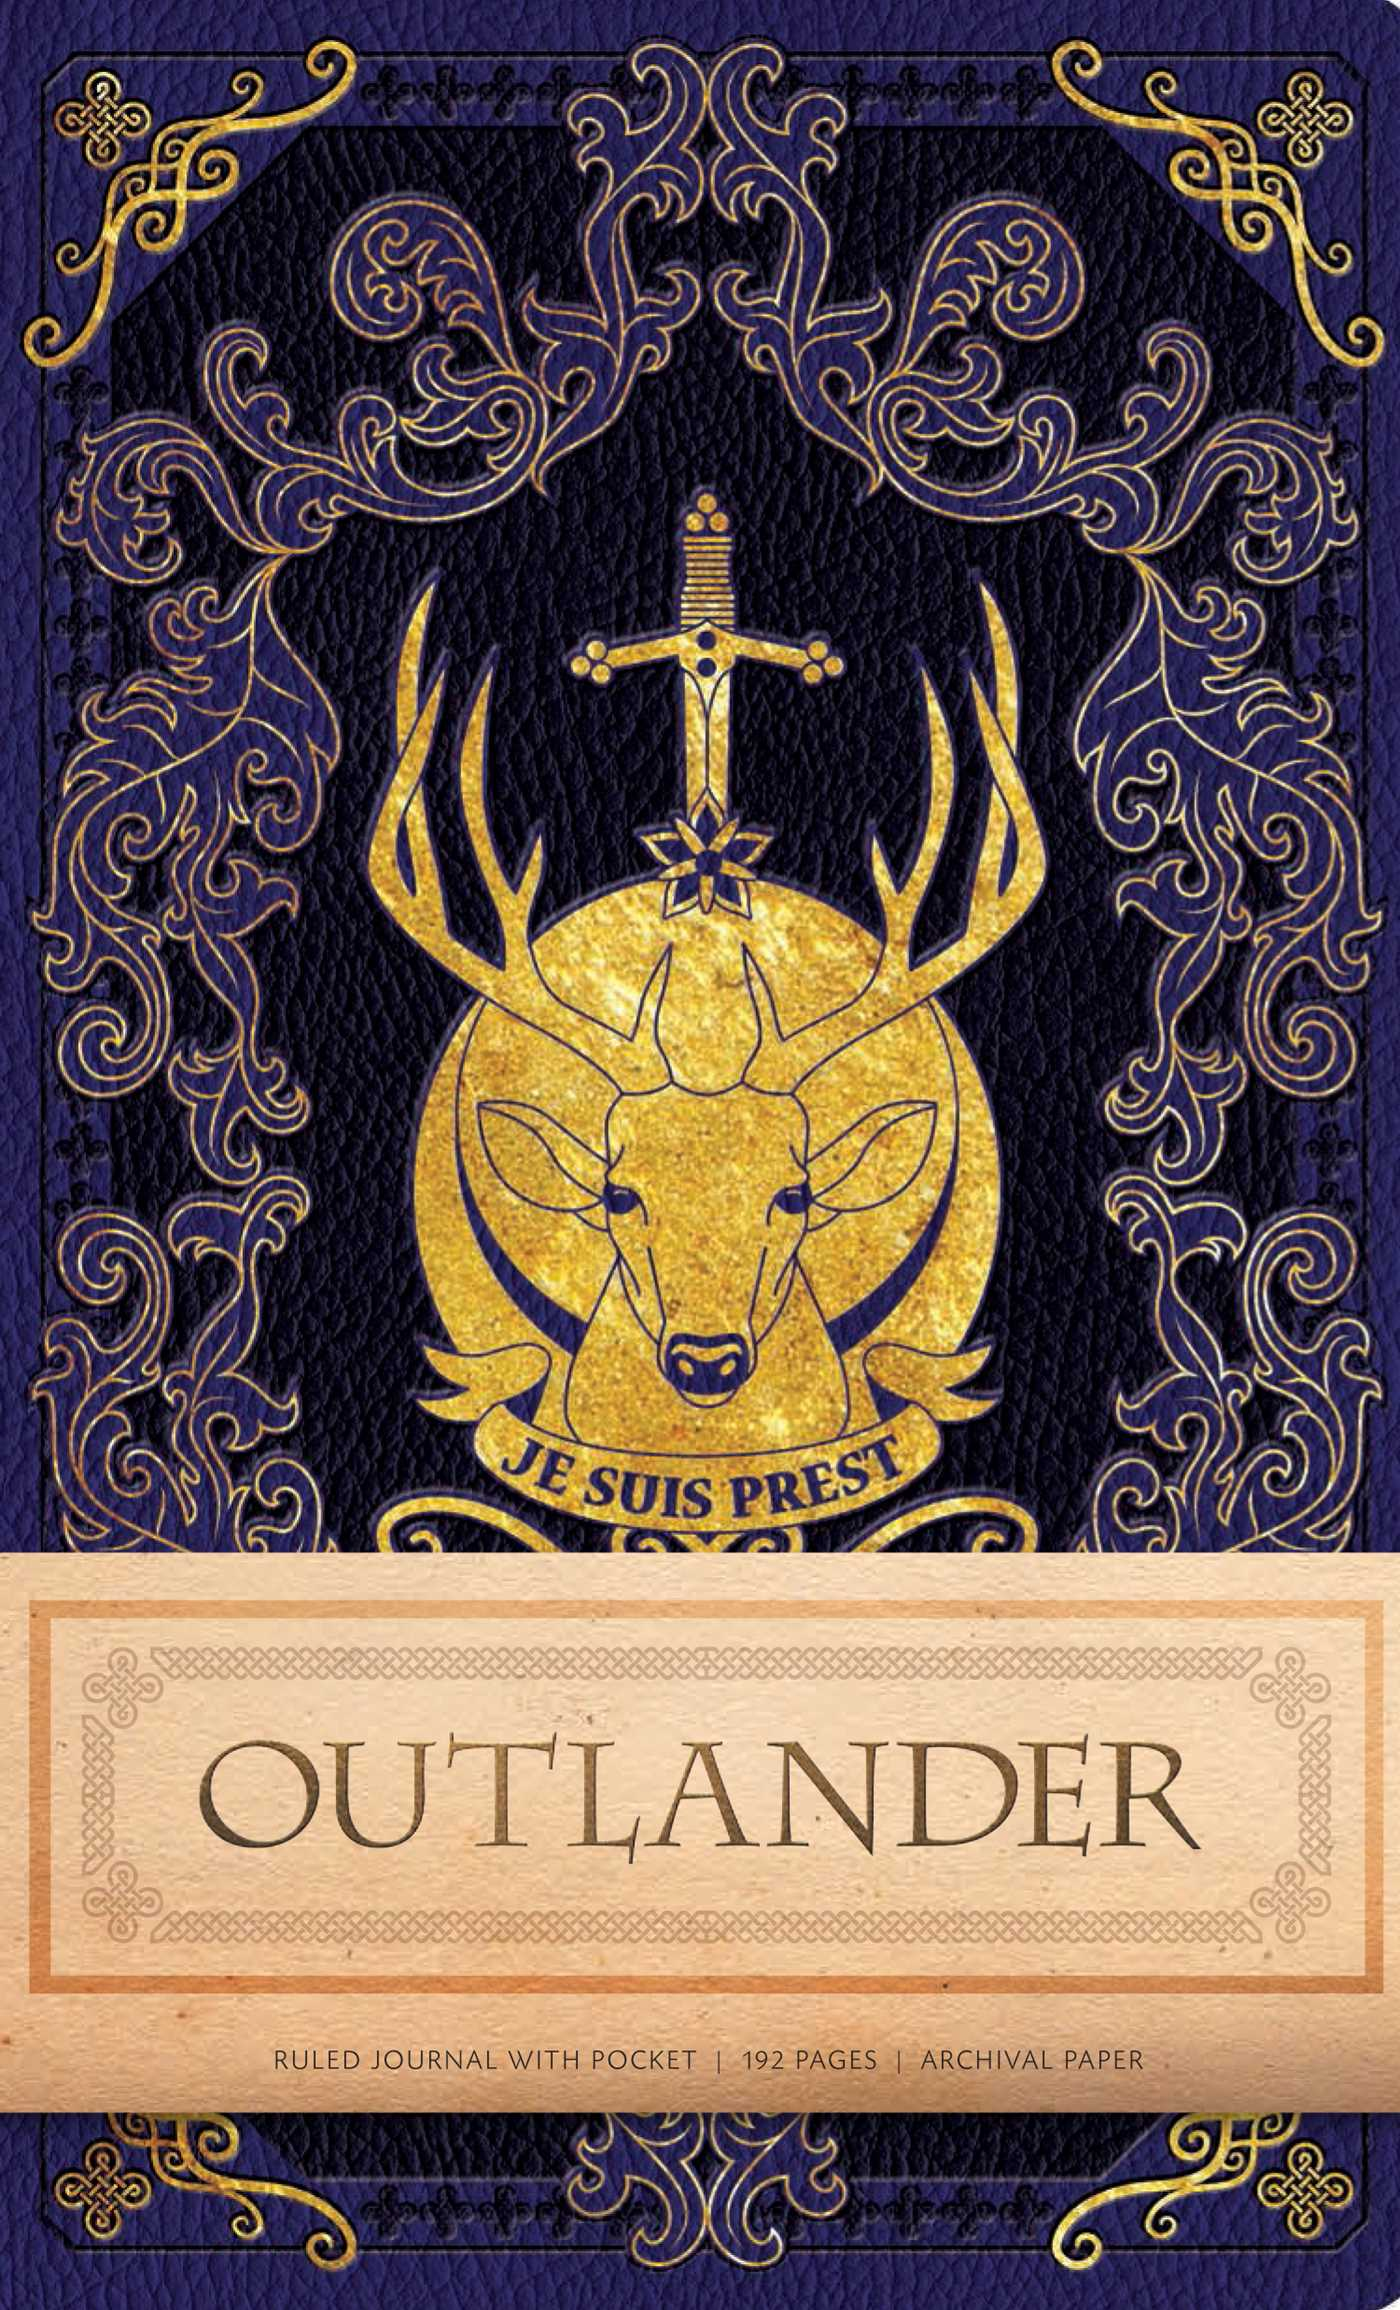 Outlander hardcover ruled journal 9781683831556 hr